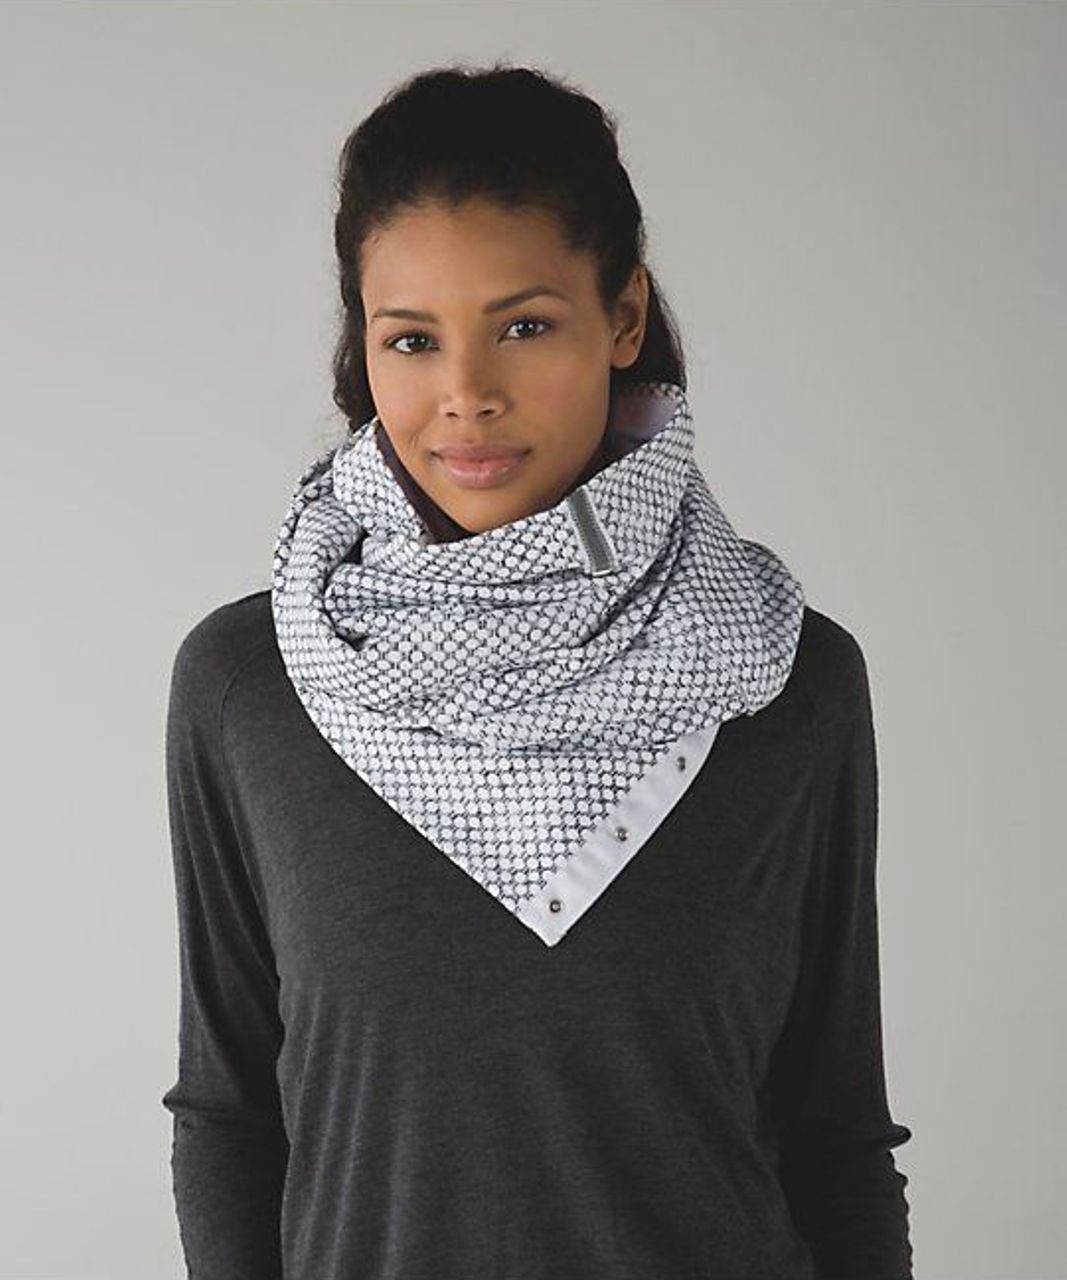 Lululemon Vinyasa Scarf *Fleece - Dottie Eyelet White Black / White